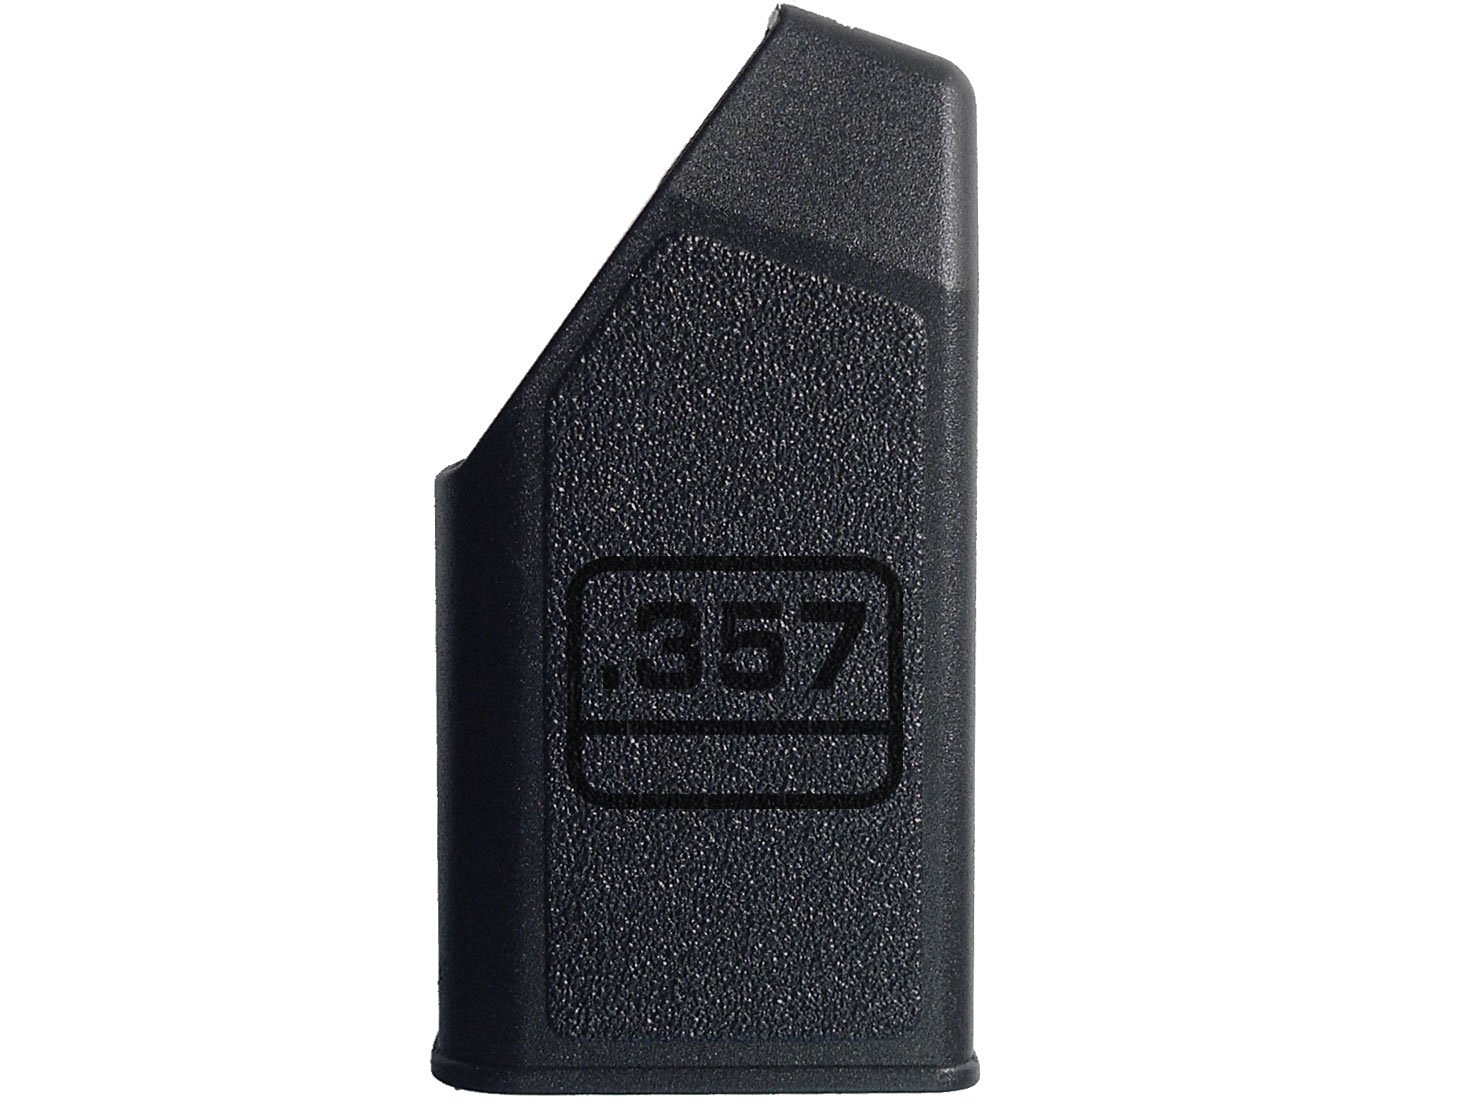 G .357 Caliber Bullet OEM Glock Magazine EZ Speed Loader 9mm .357 .40 .45gap engraved by NDZ Performance